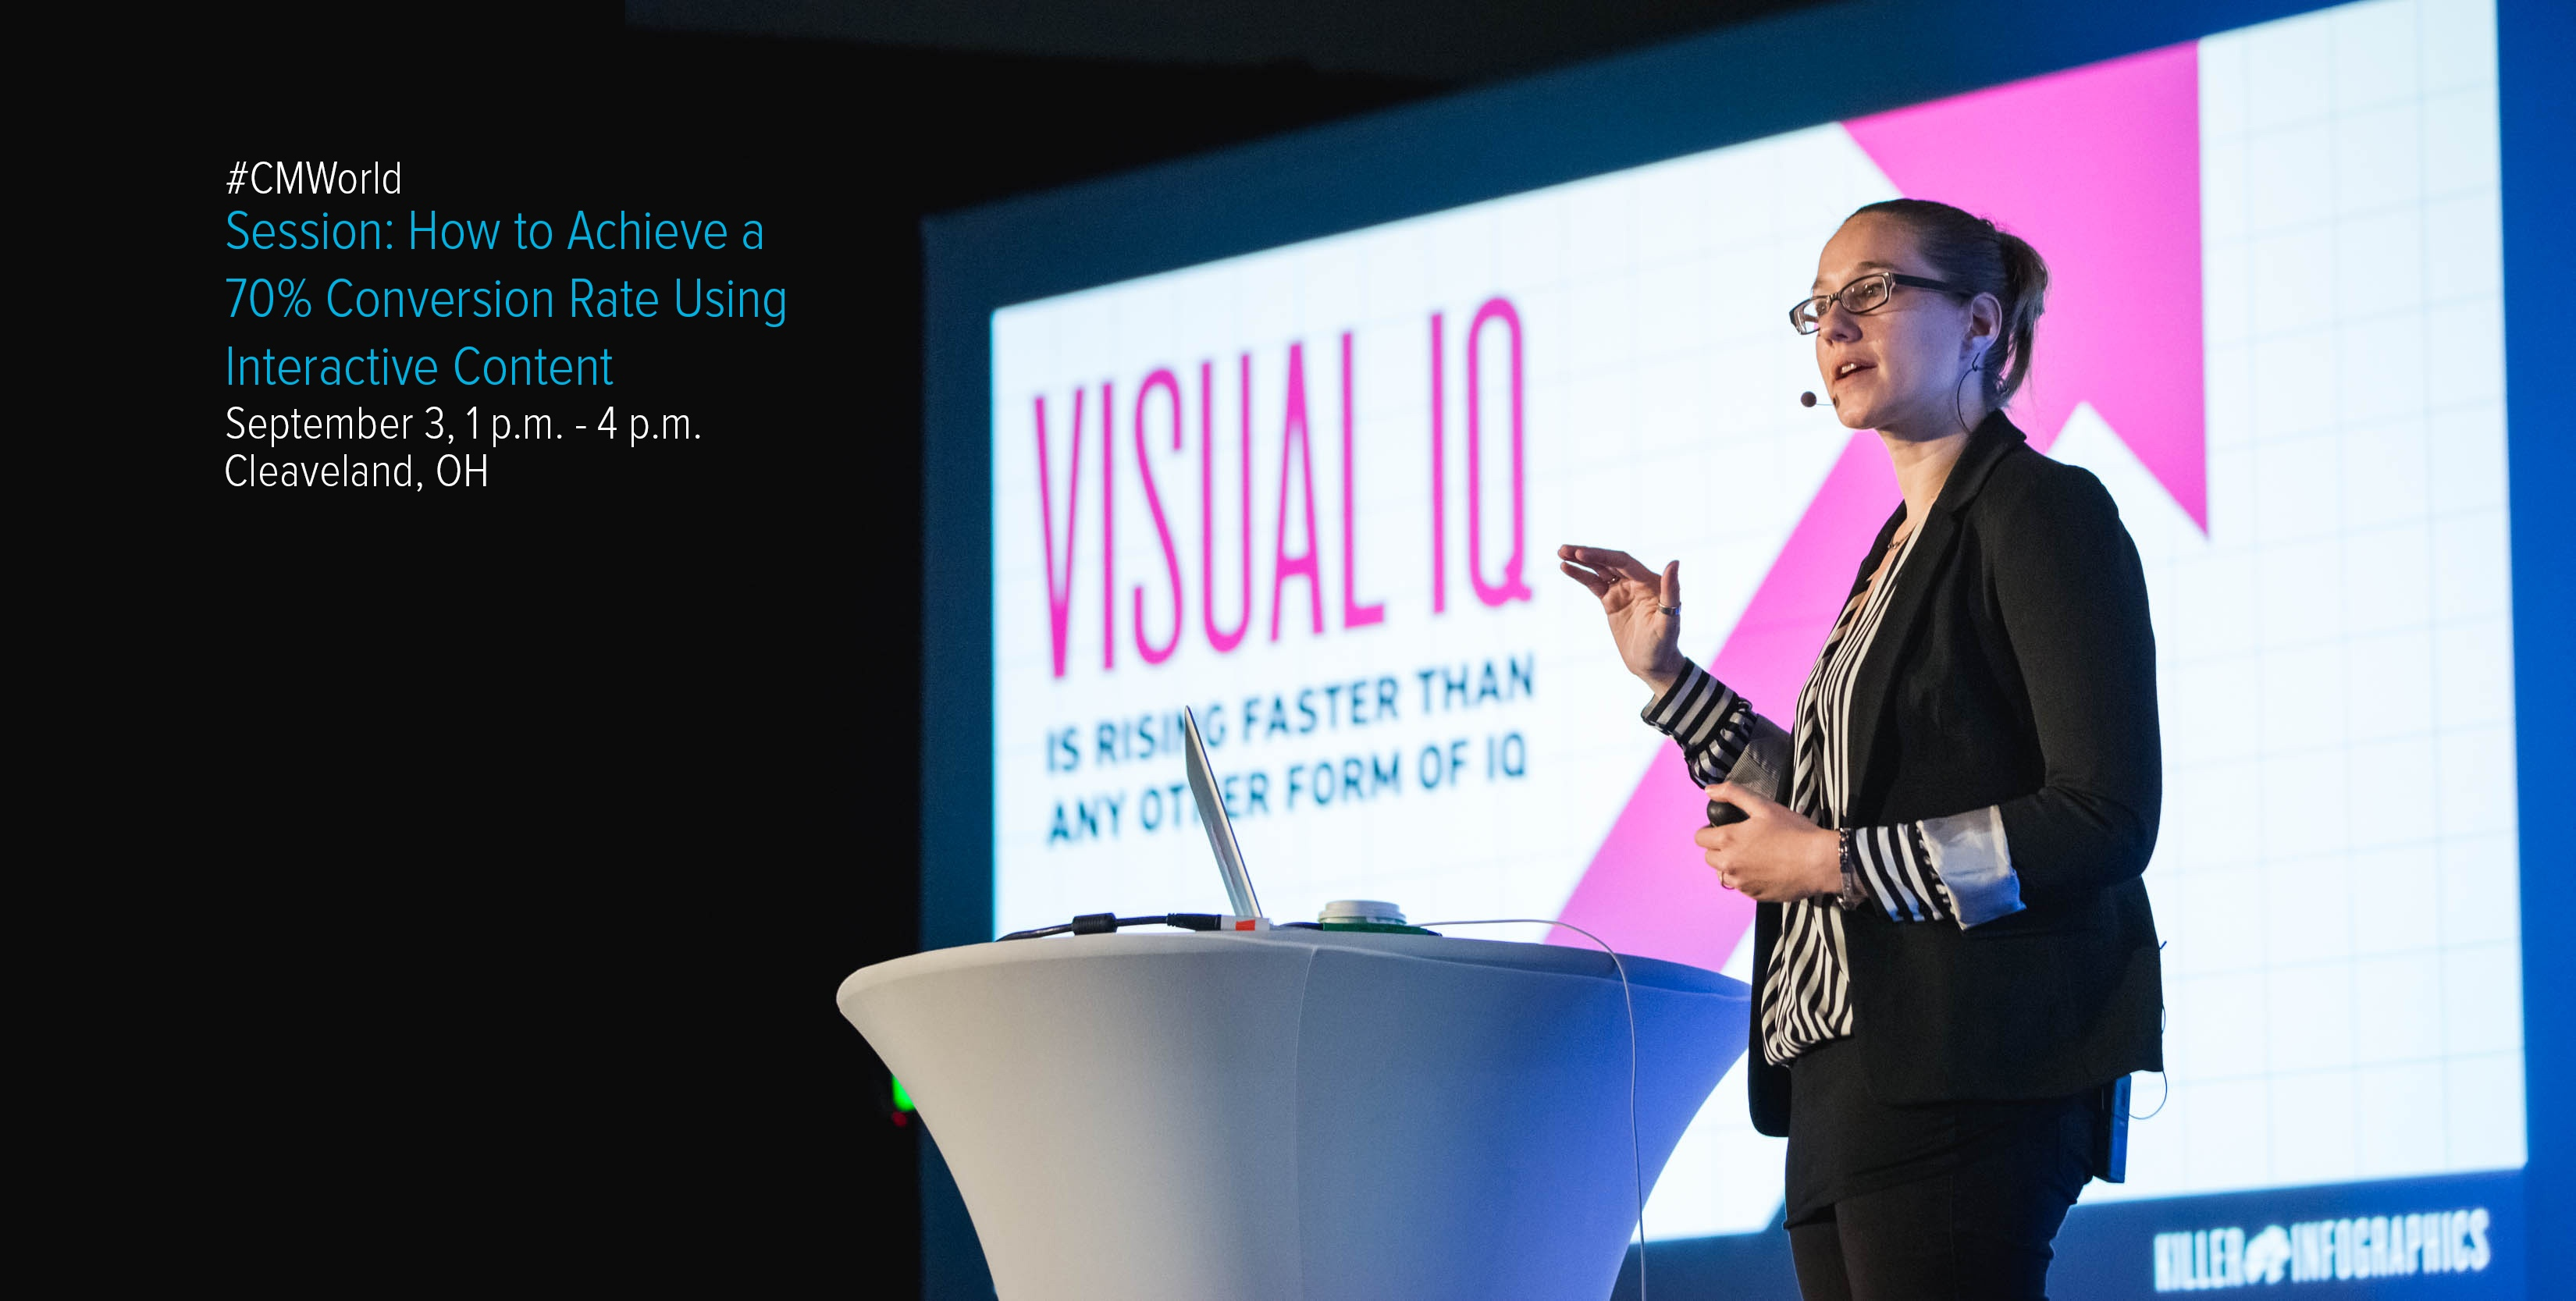 Amy Balliett on stage delivering a pitch about visual communication using presentation deck design